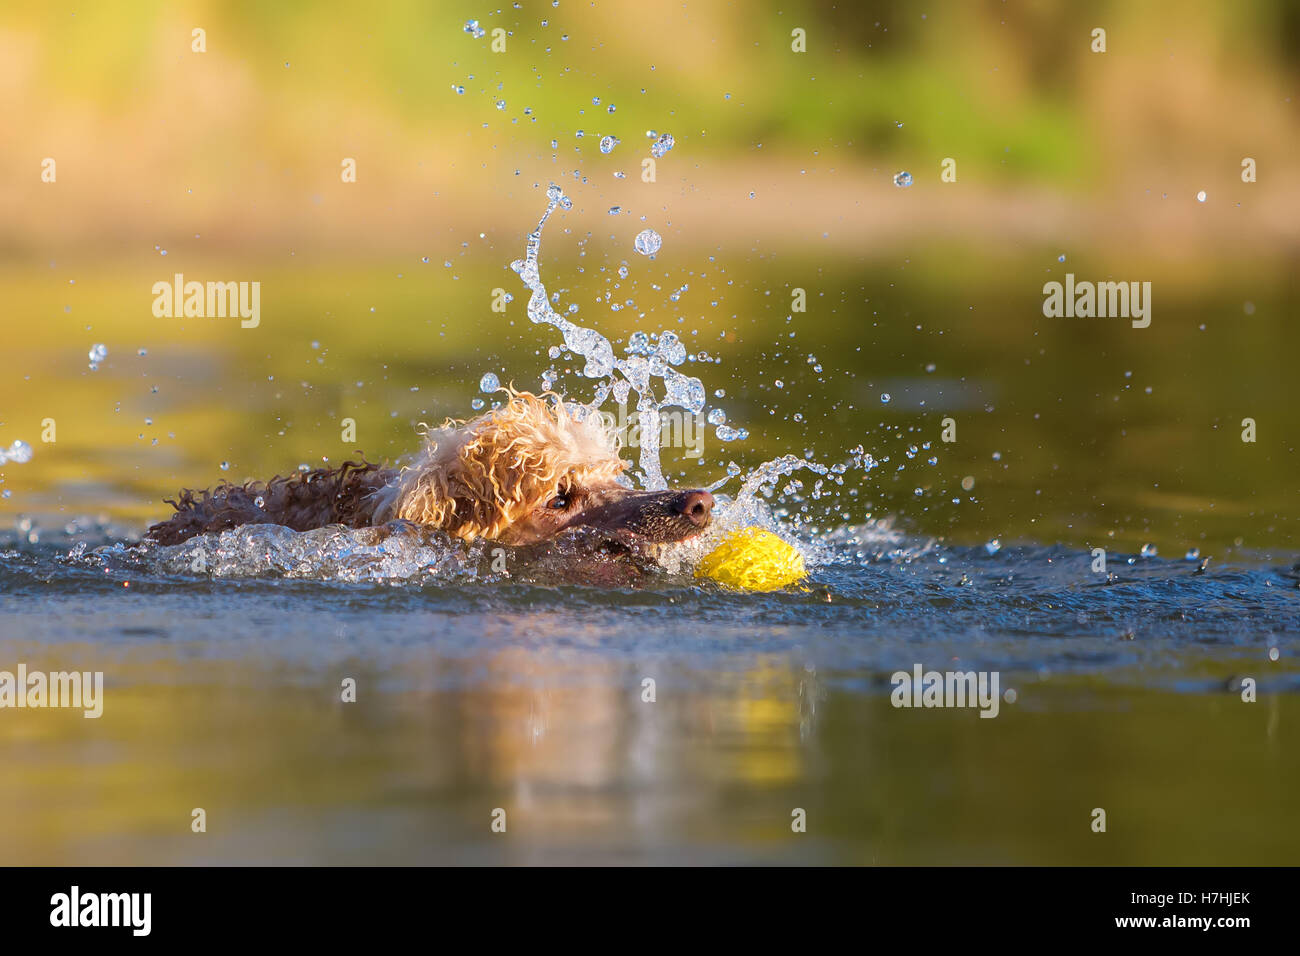 royal poodle playing with a ball in the water Stock Photo